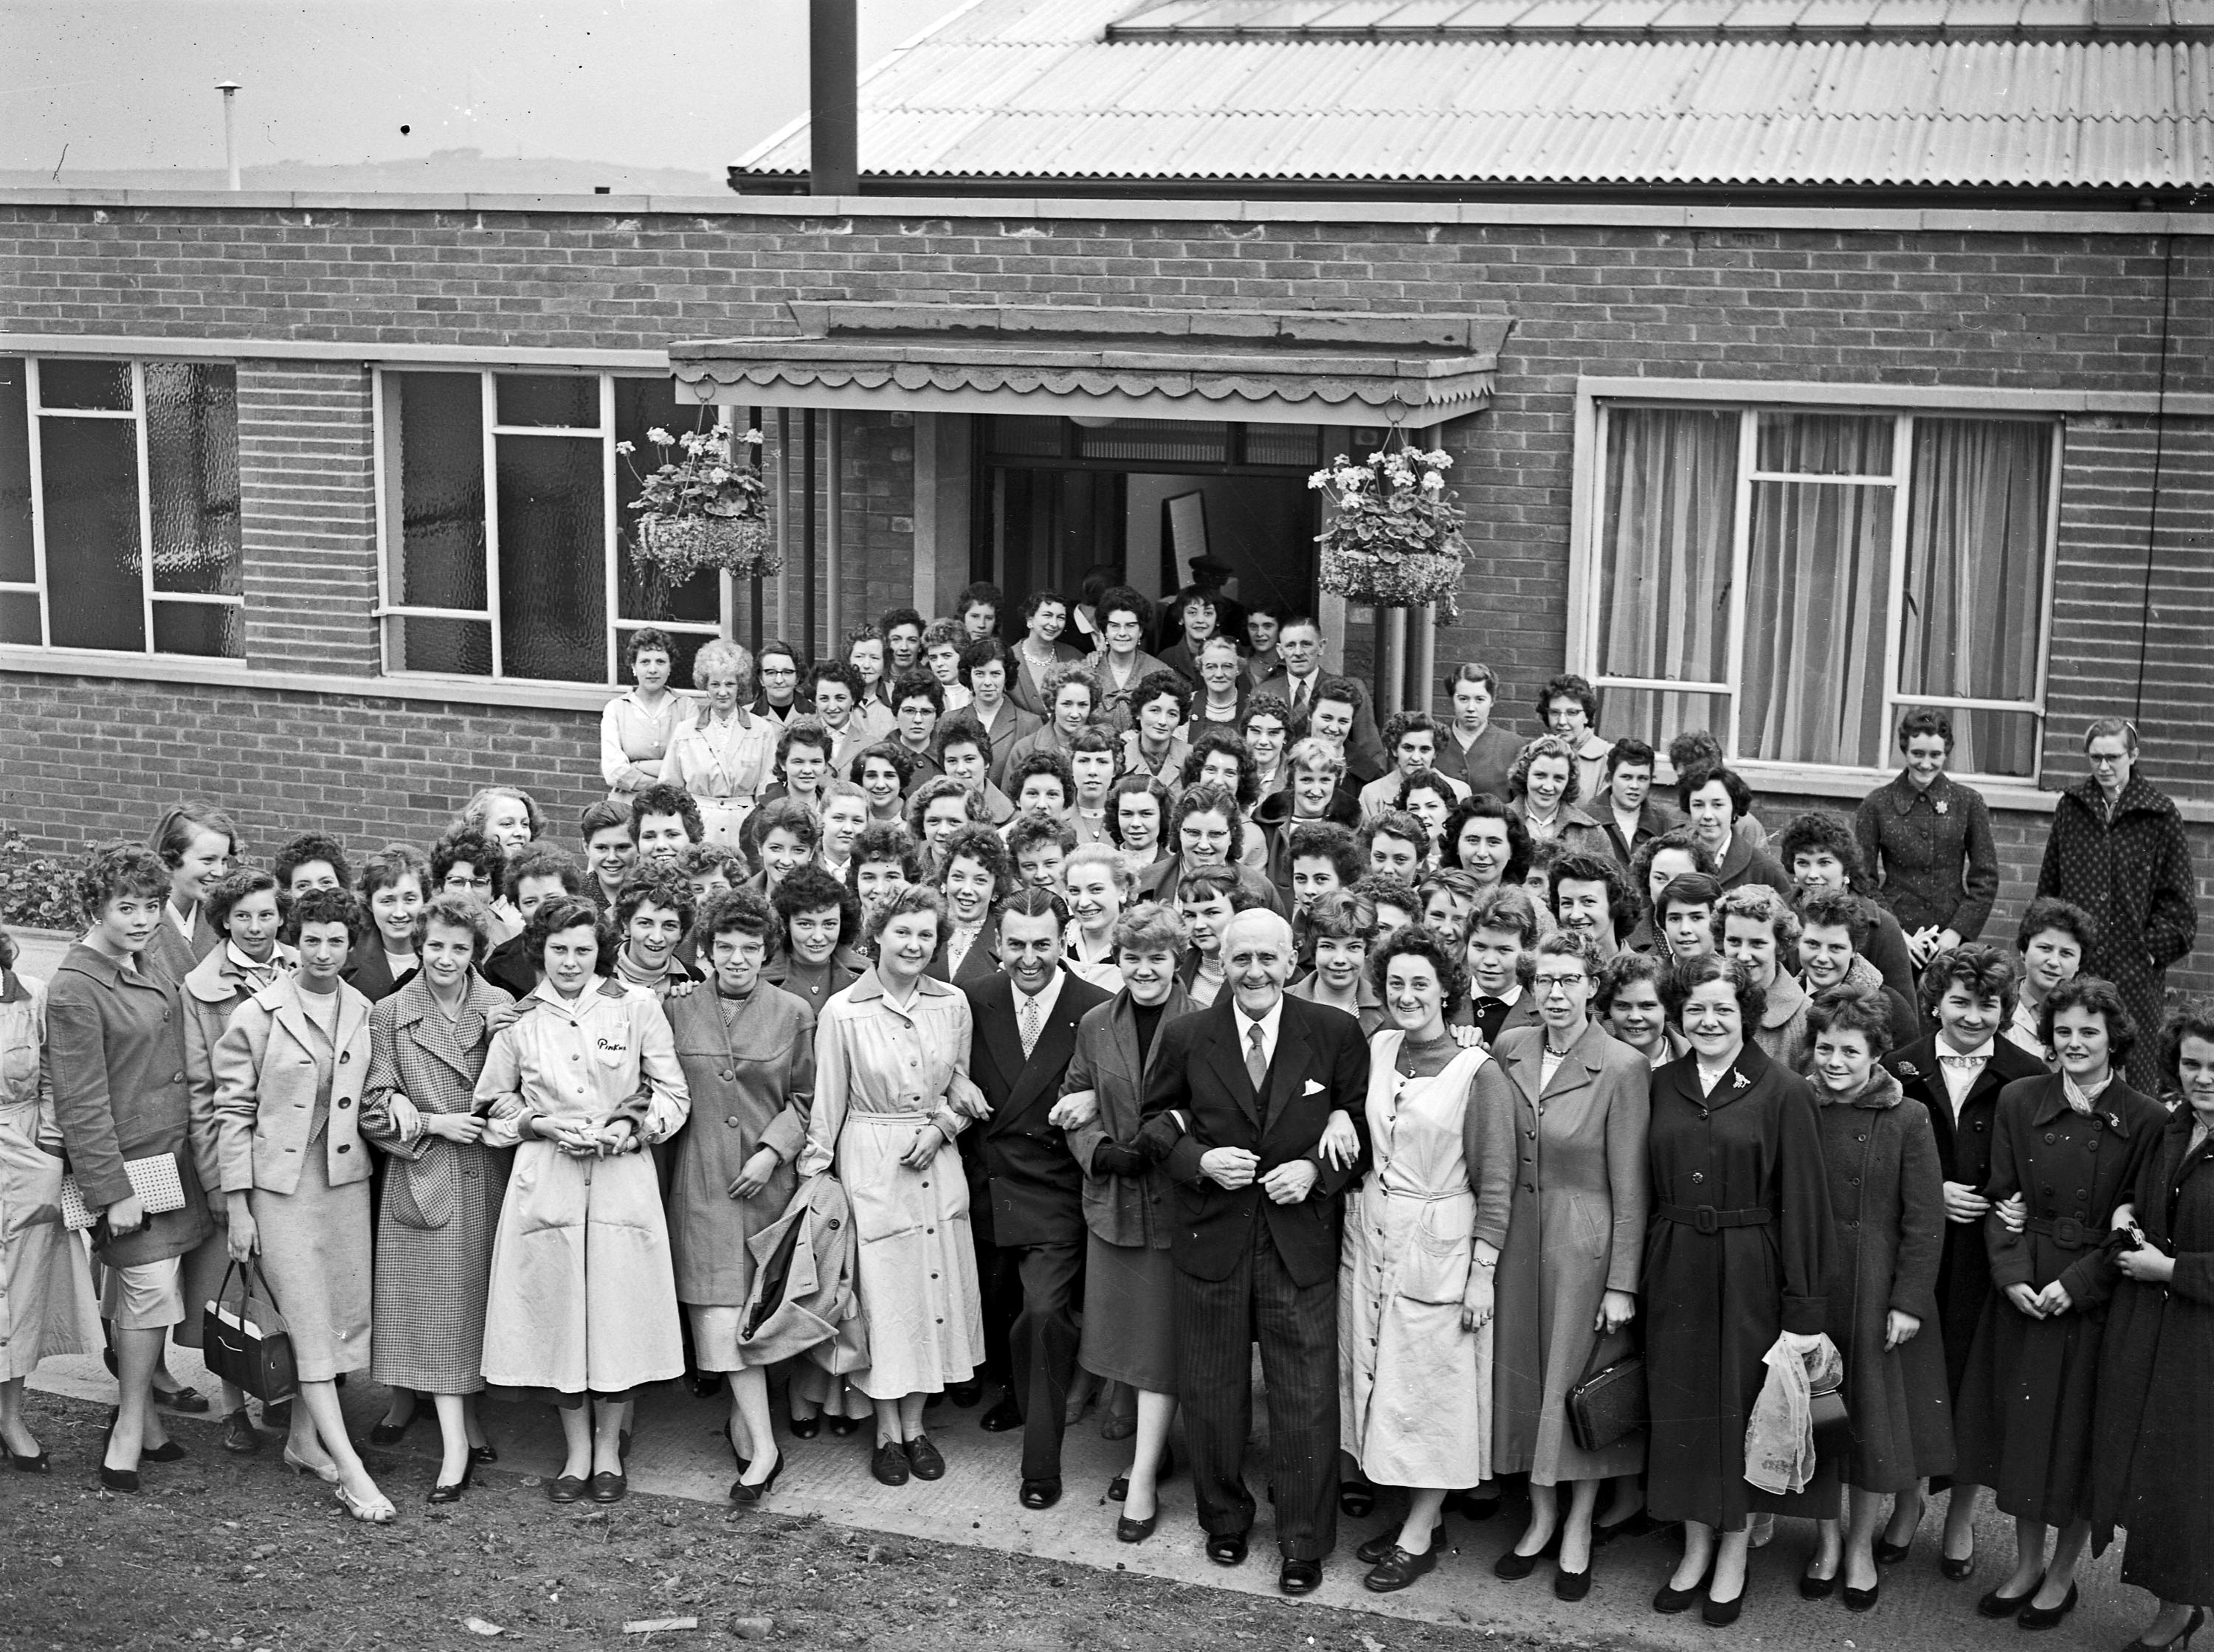 14.1959 June 18th Opening Glove factory